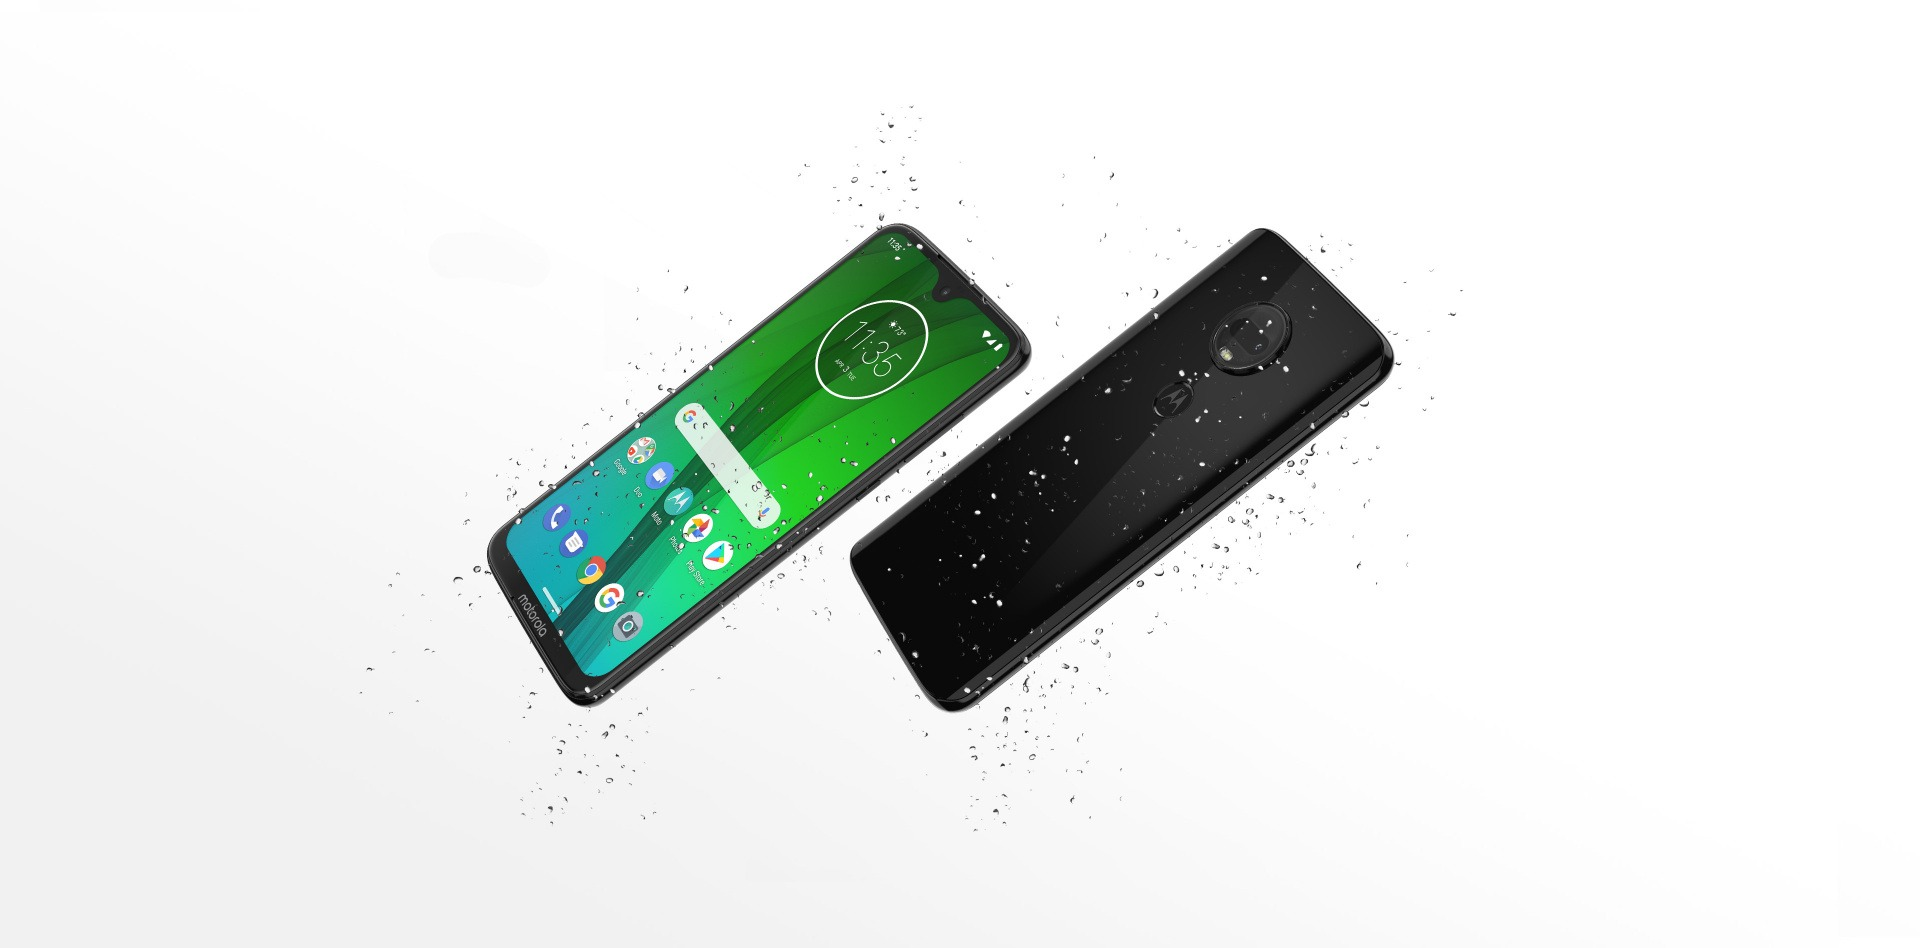 Moto G7 Family is now official - Moto G7, G7 Plus, G7 Play & G7 Power